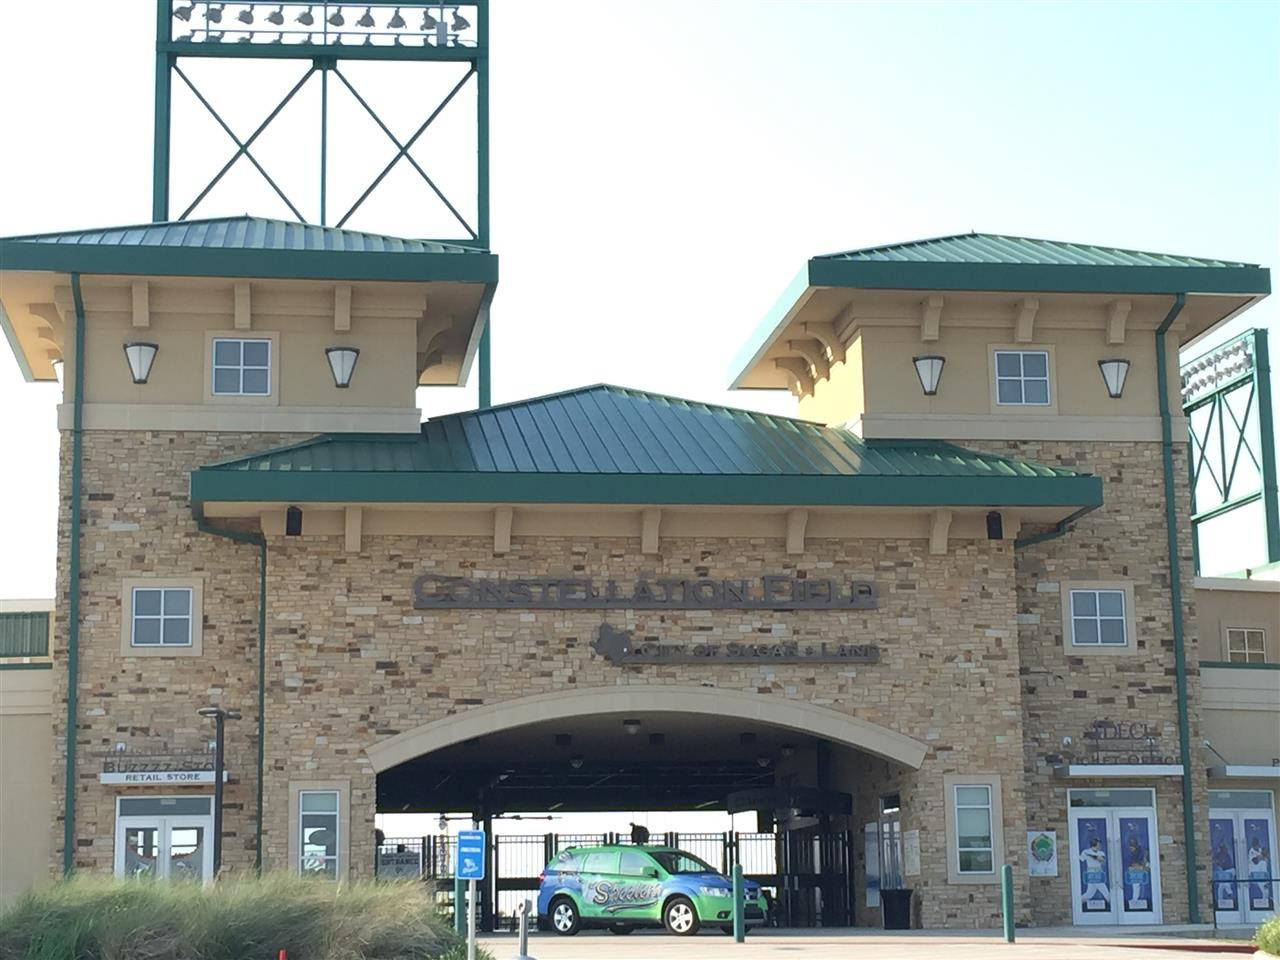 Constellation Field.  Home of the Sugar Land Skeeters minor league..